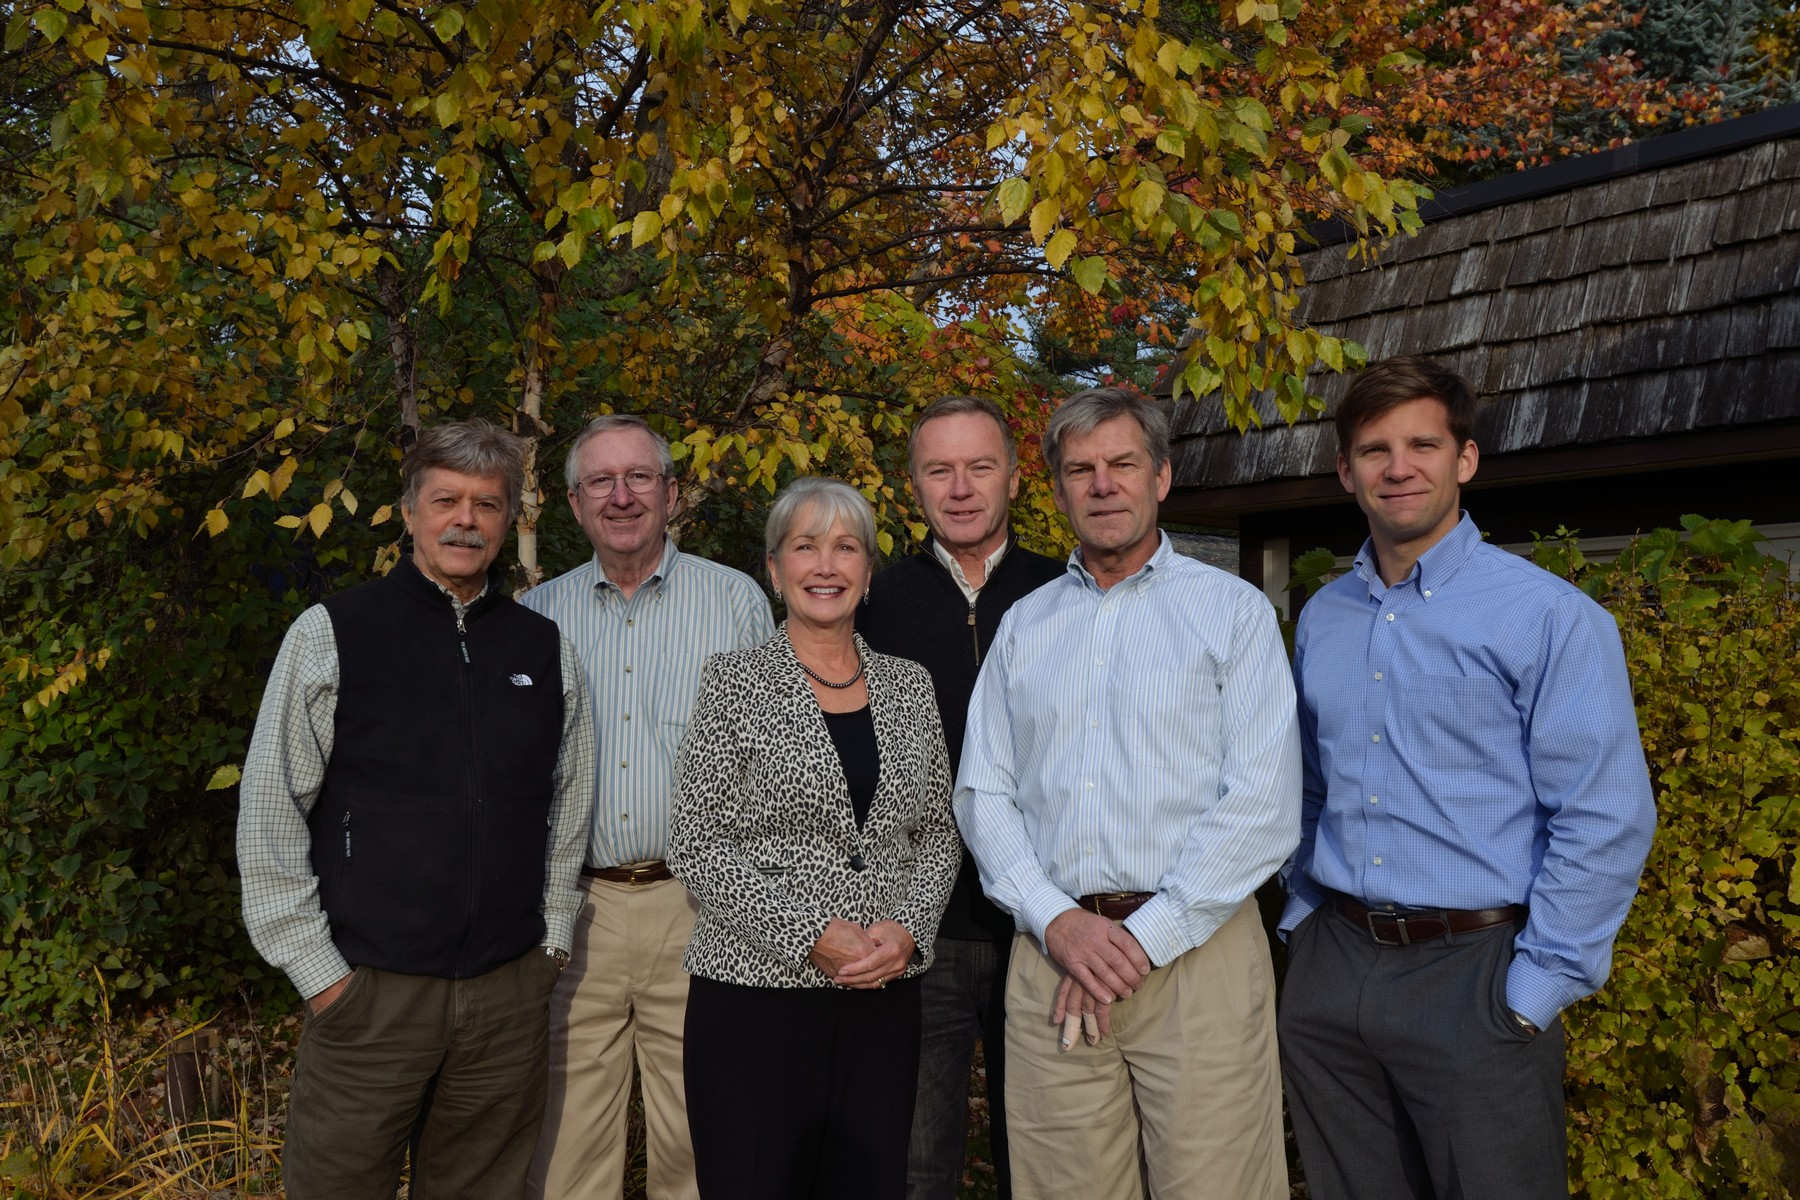 management and sales team for the Coldwell Banker Schmidt real estate